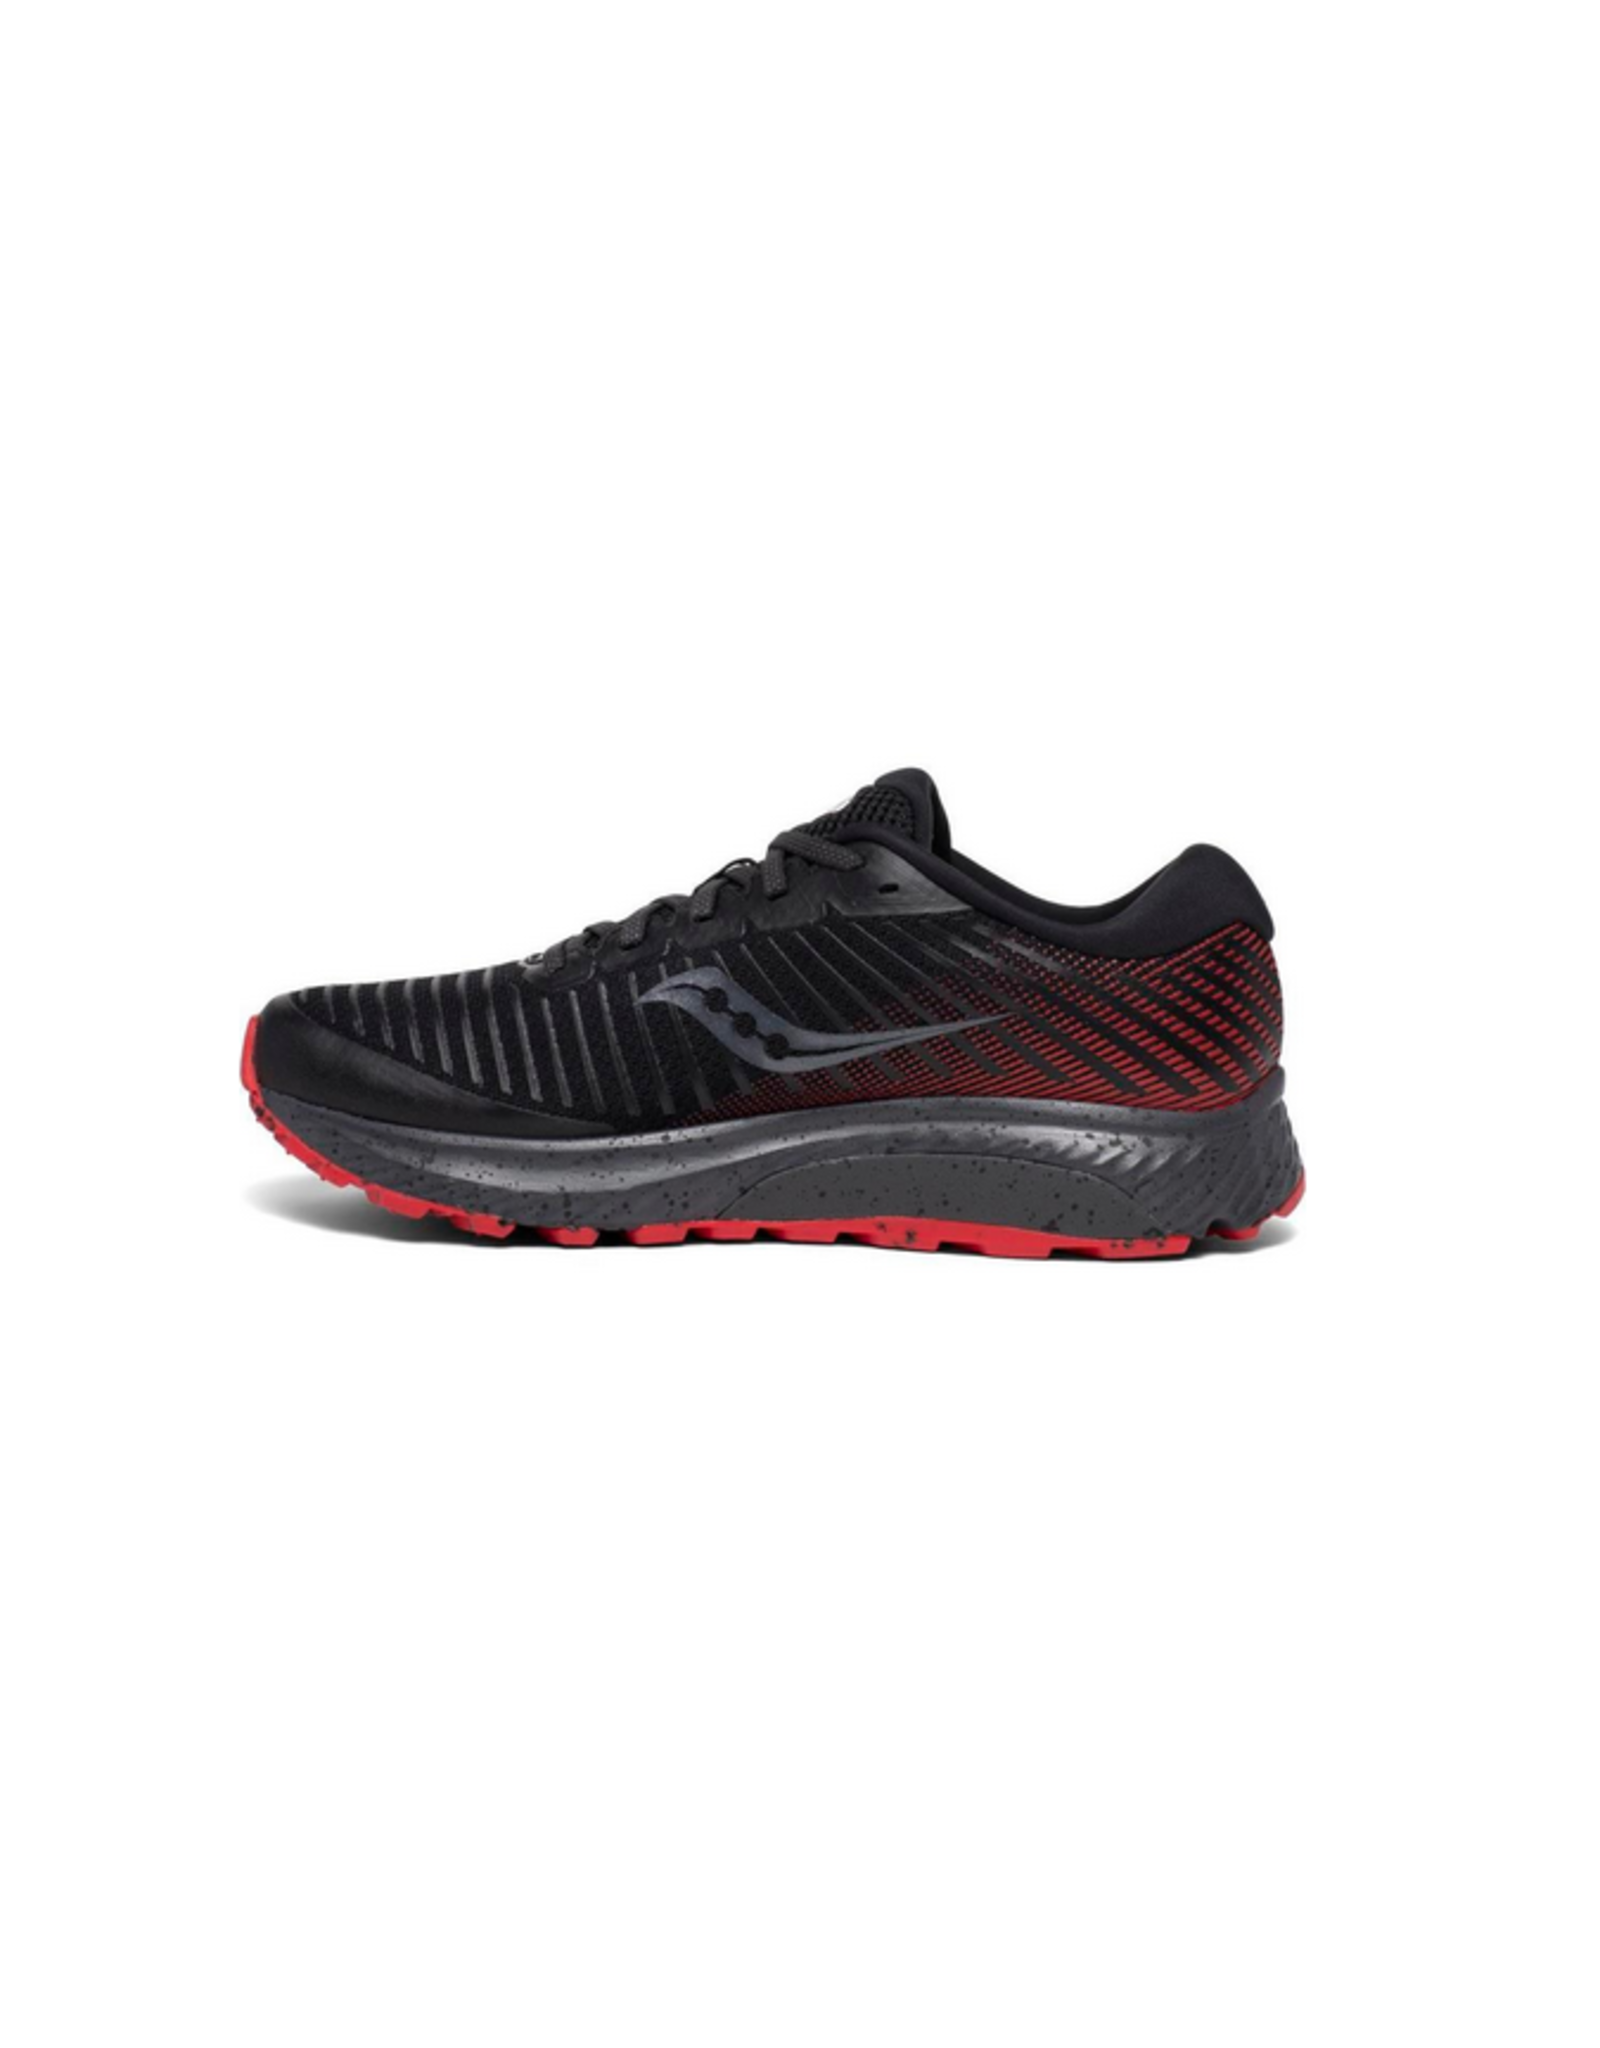 Saucony Men's Guide 13 TR